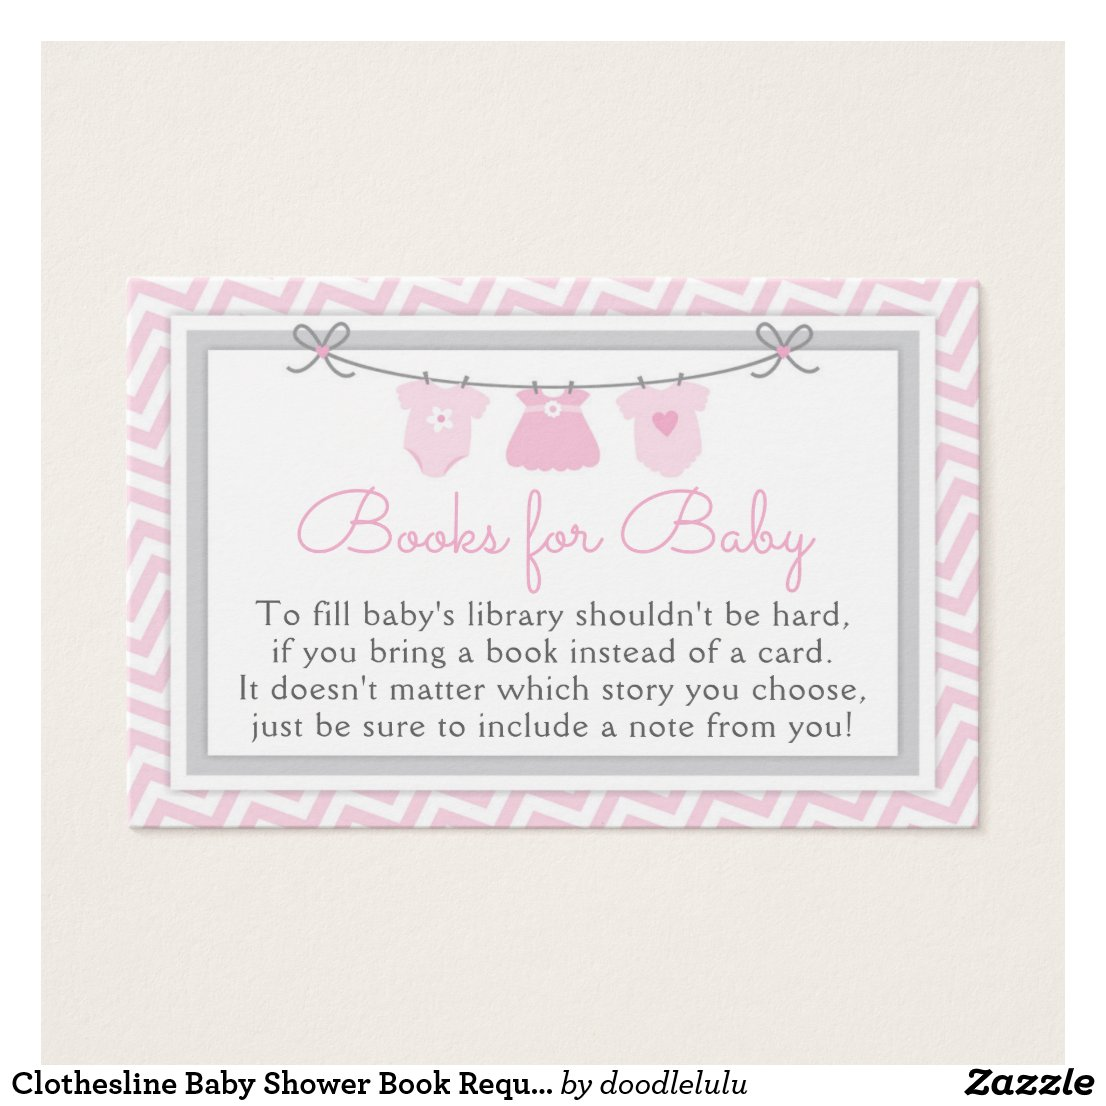 Clothesline Baby Shower Book Request Card